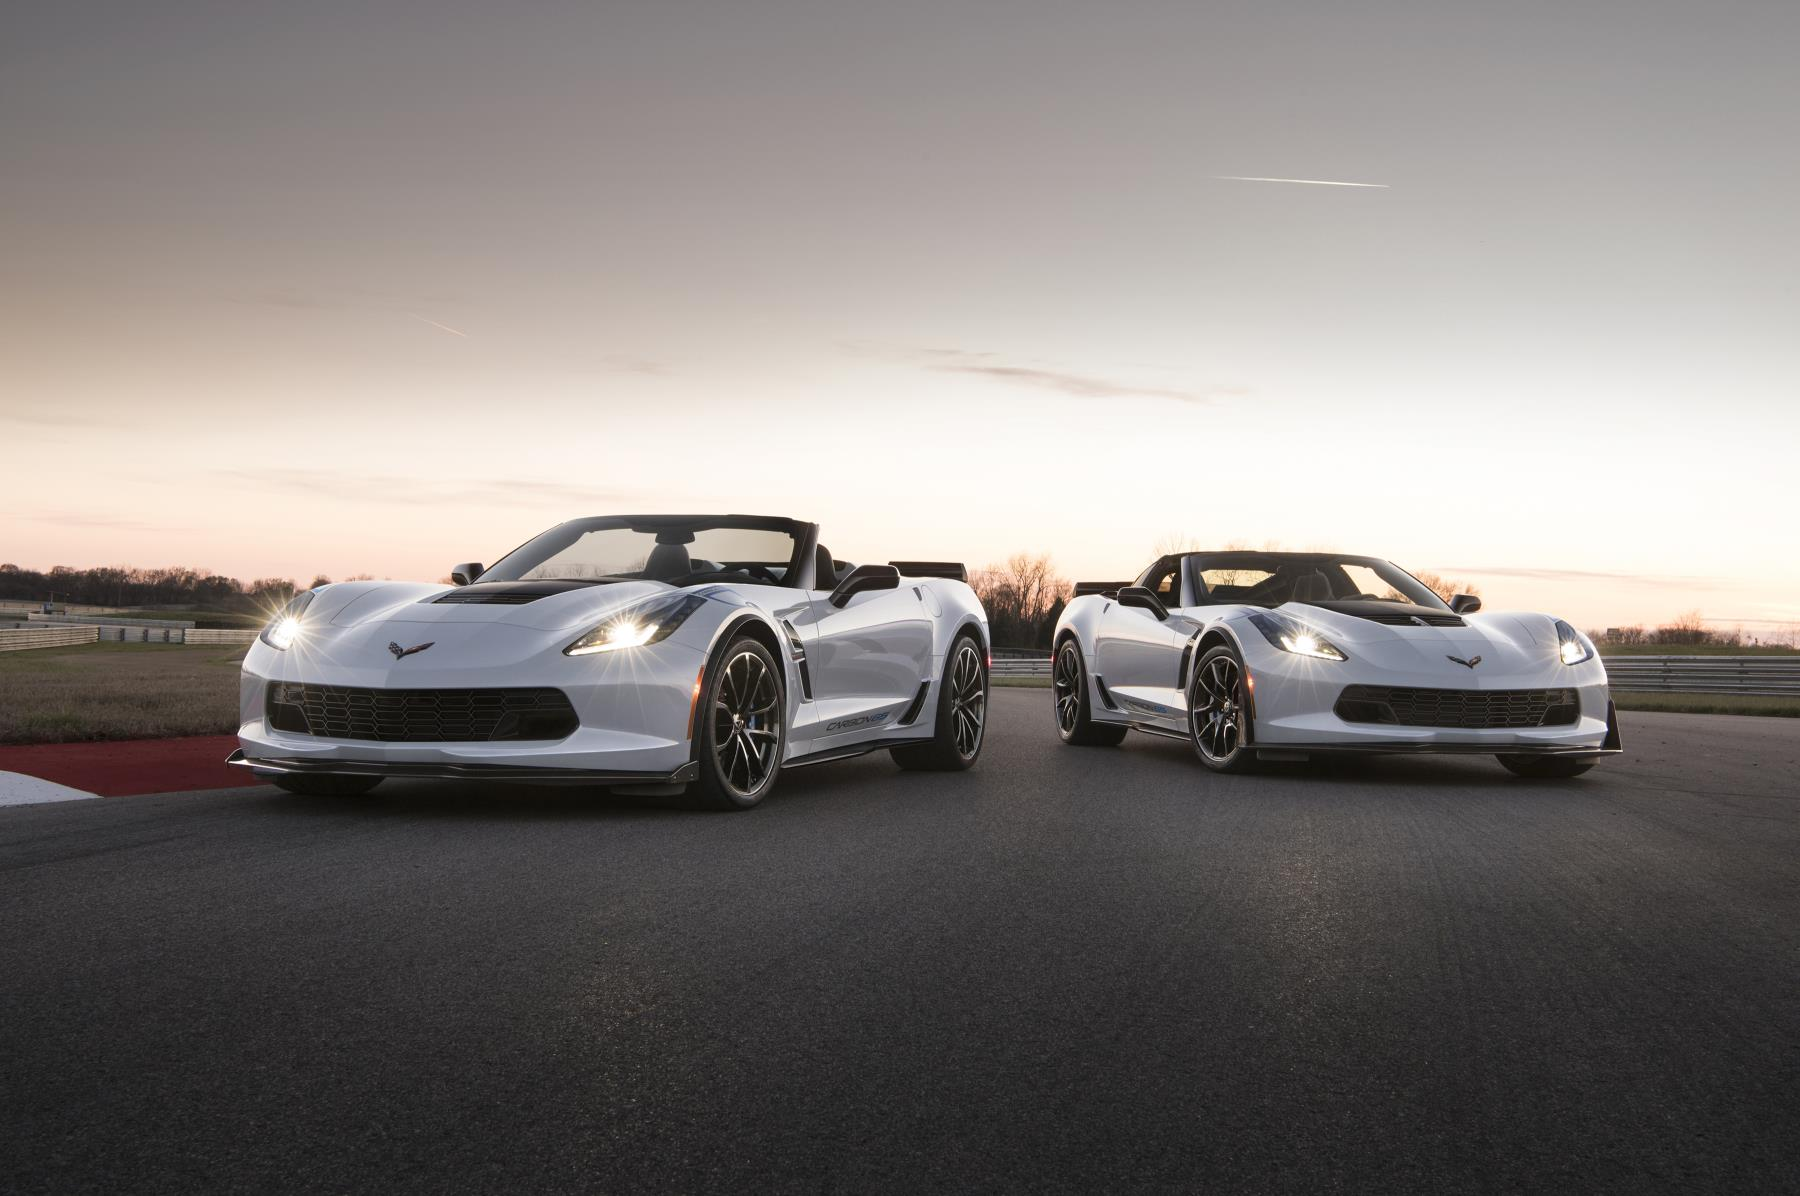 Here S How The C7 Corvette Changed For Model Year 2018